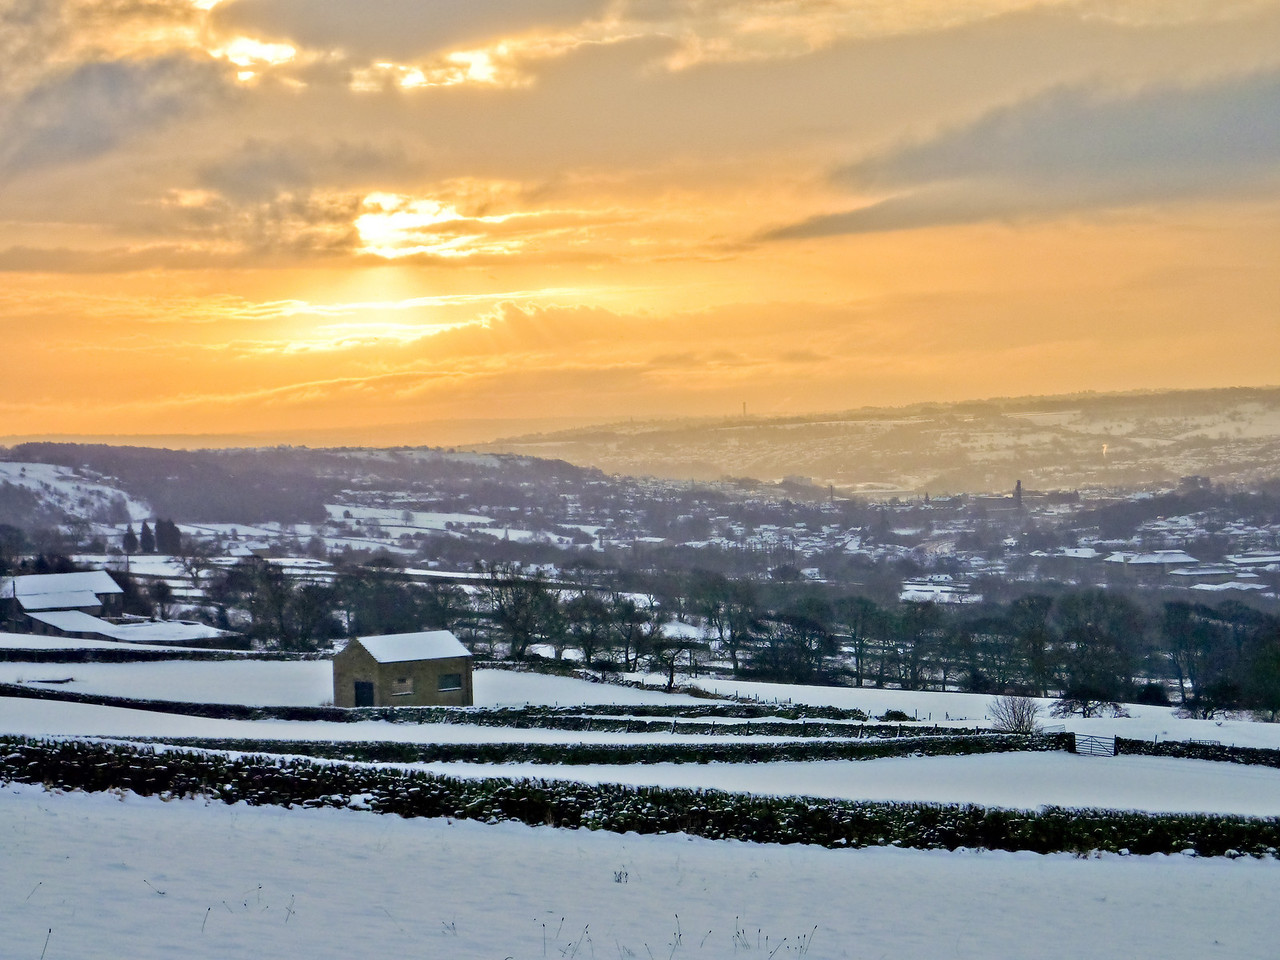 View towards Bingley from above Riddlesden. Morning.